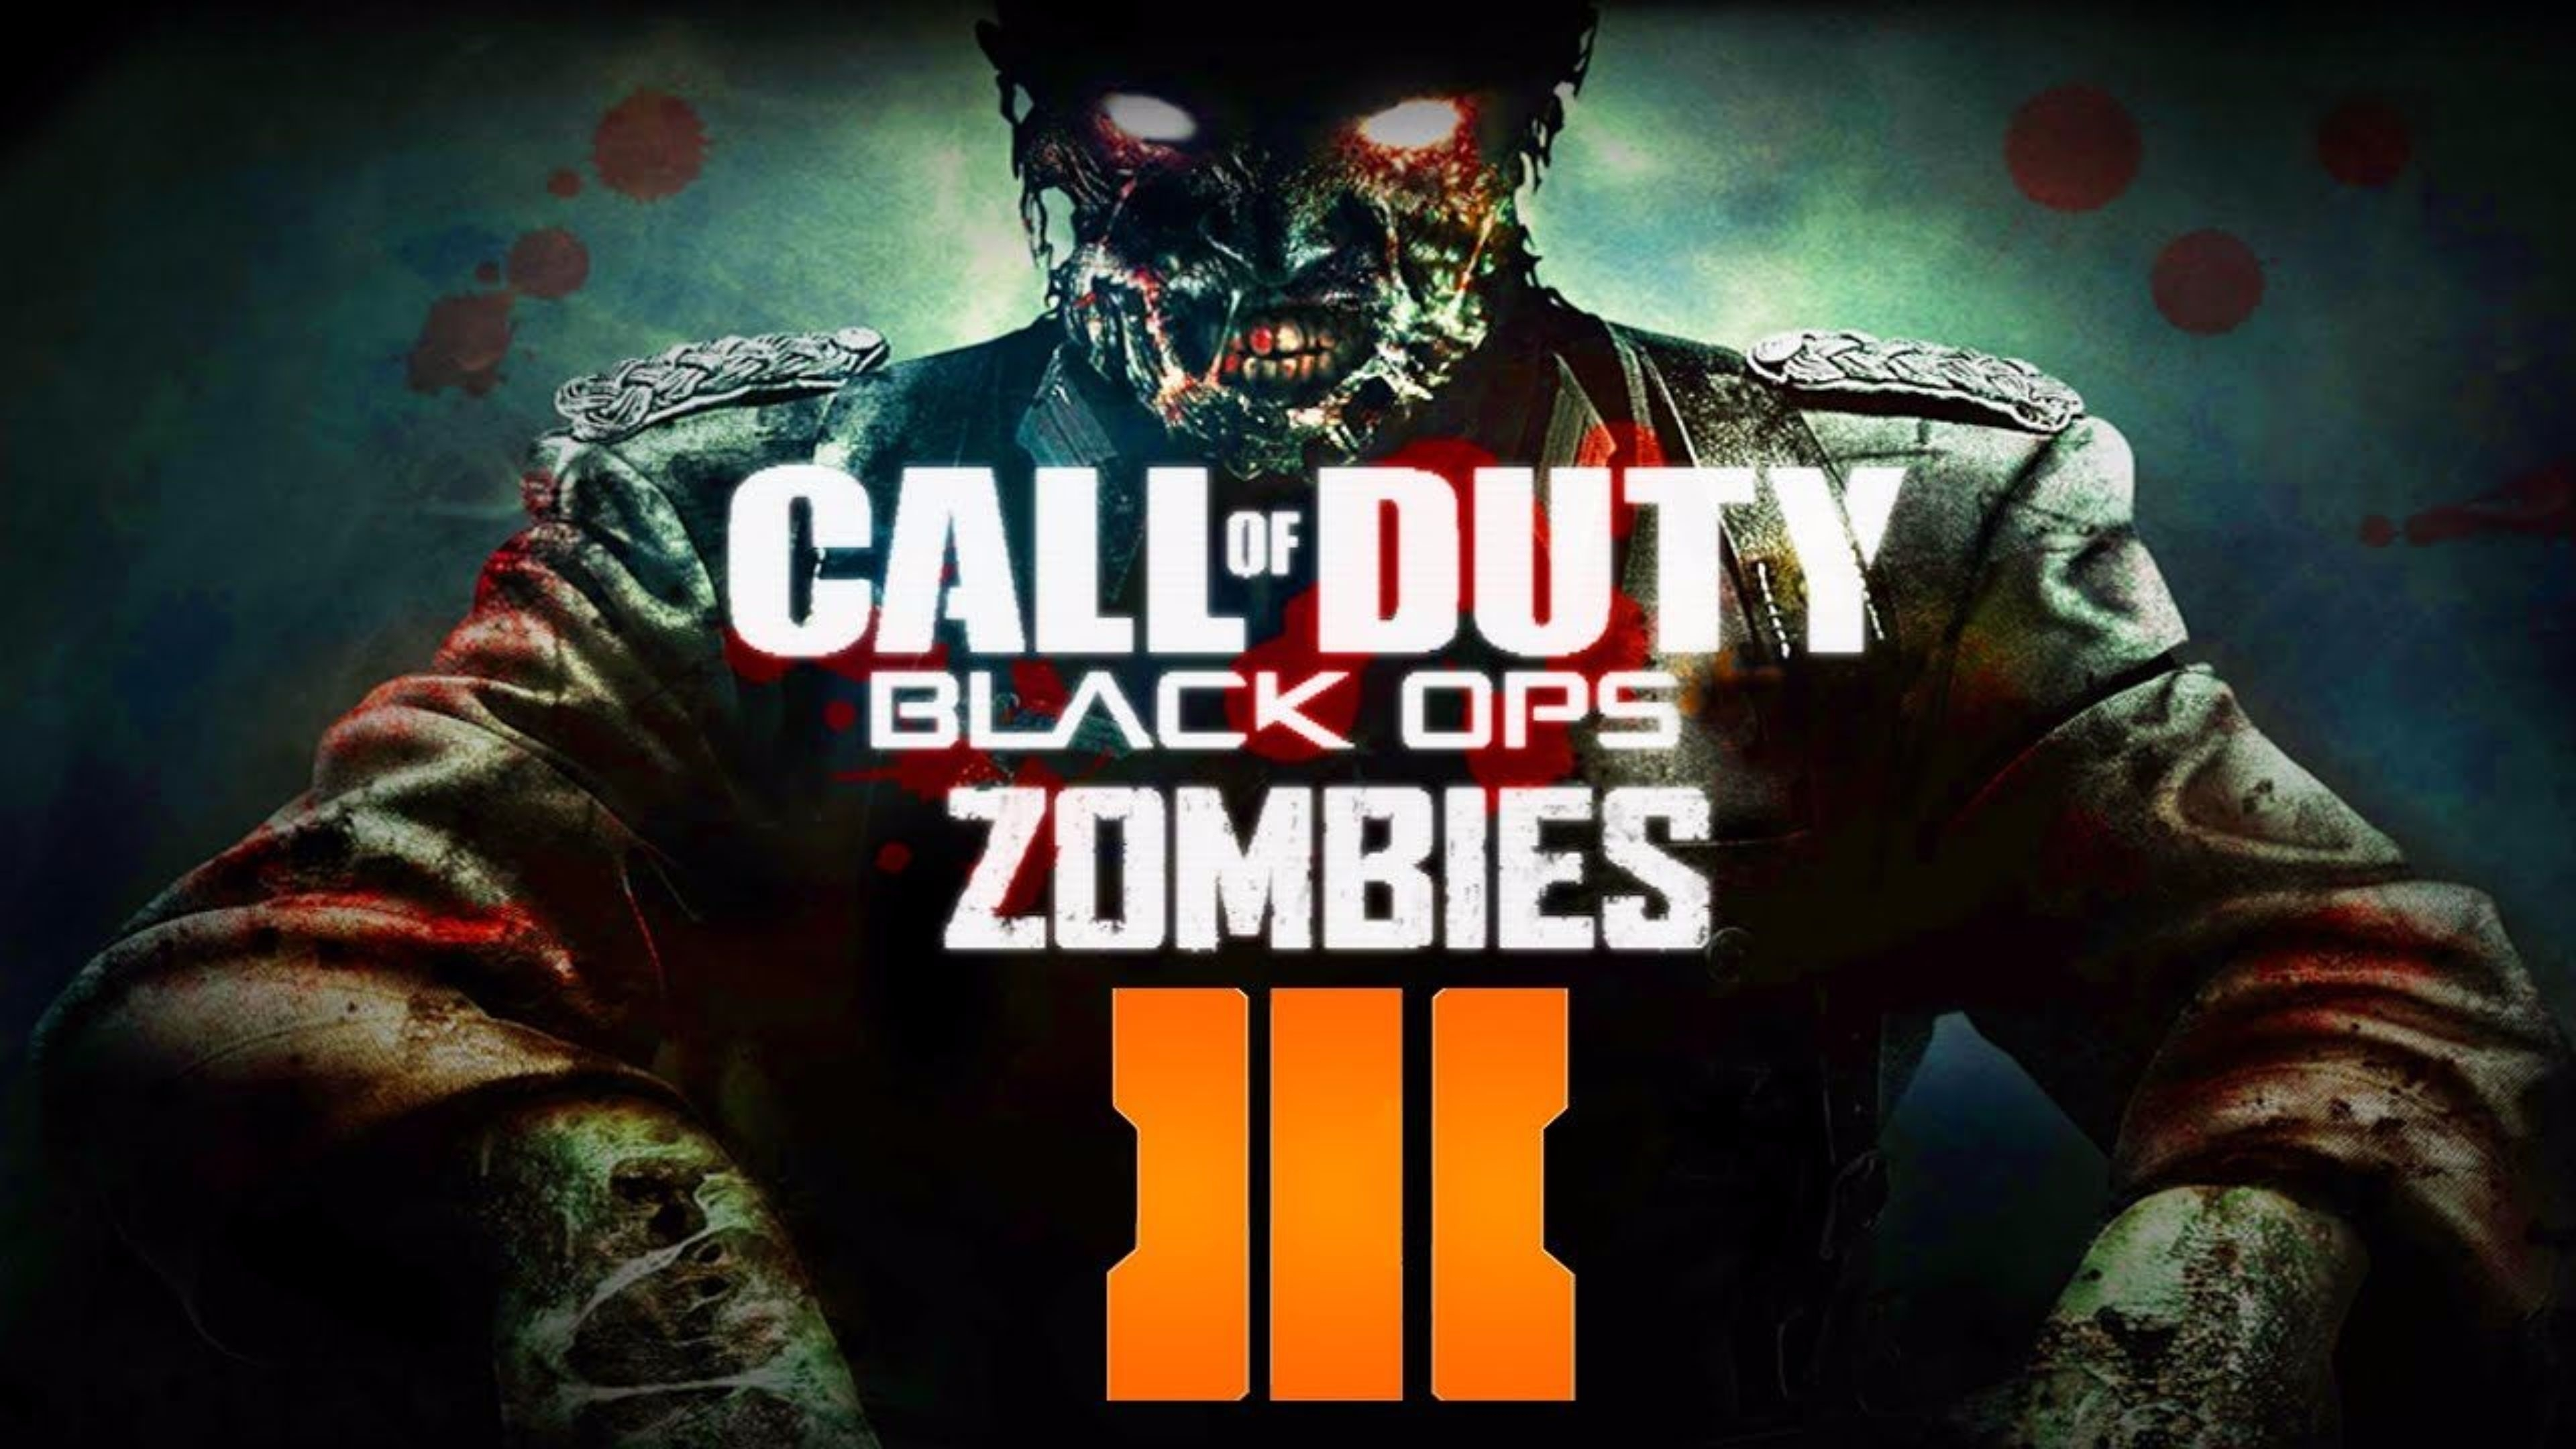 zombies call of duty black ops 3 4k wallpaper | free 4k wallpaper